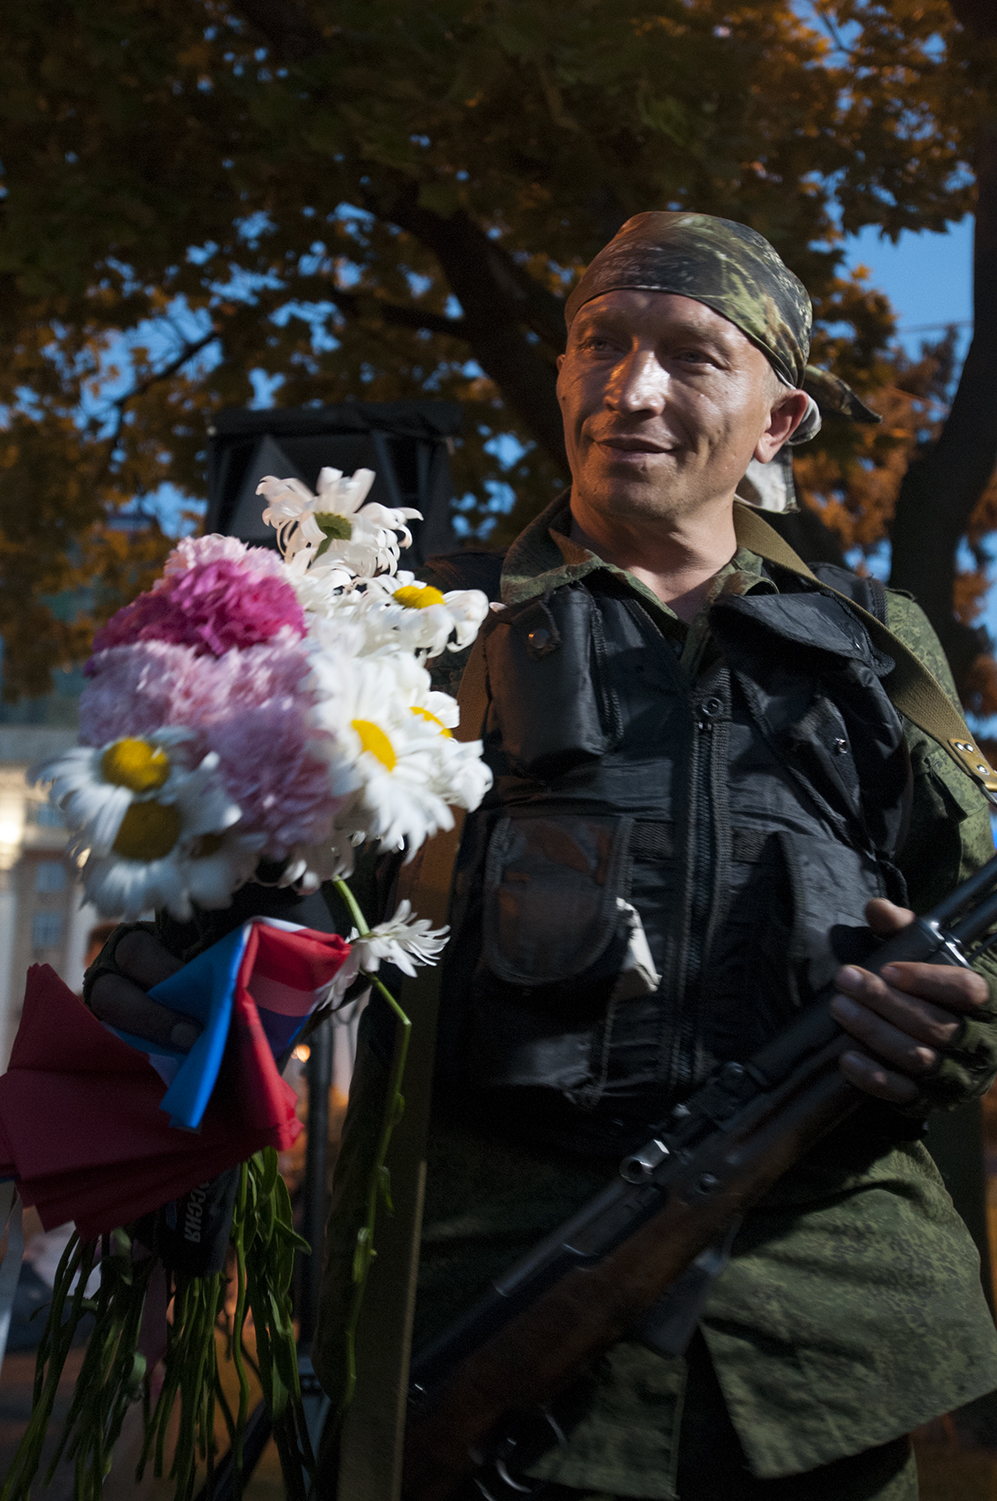 A separatist soldier holding his old rifle  from one hand and flowers warped in a Russian flag gifted by some women in the other one.